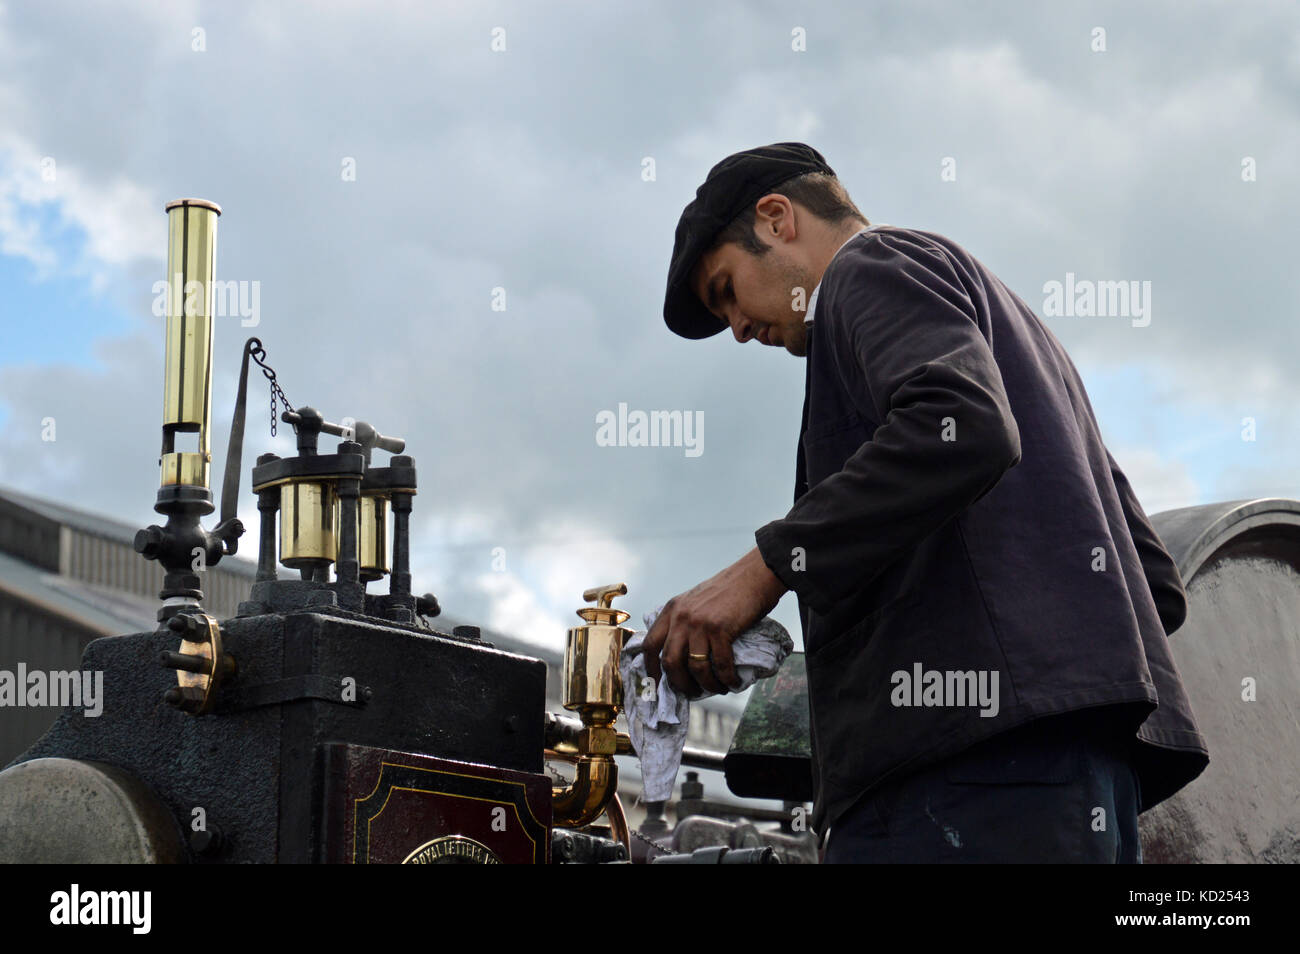 Man working on steamroller at the Vale of Rheidol Railway, Abersystwyth, Ceredigion, Wales - Stock Image